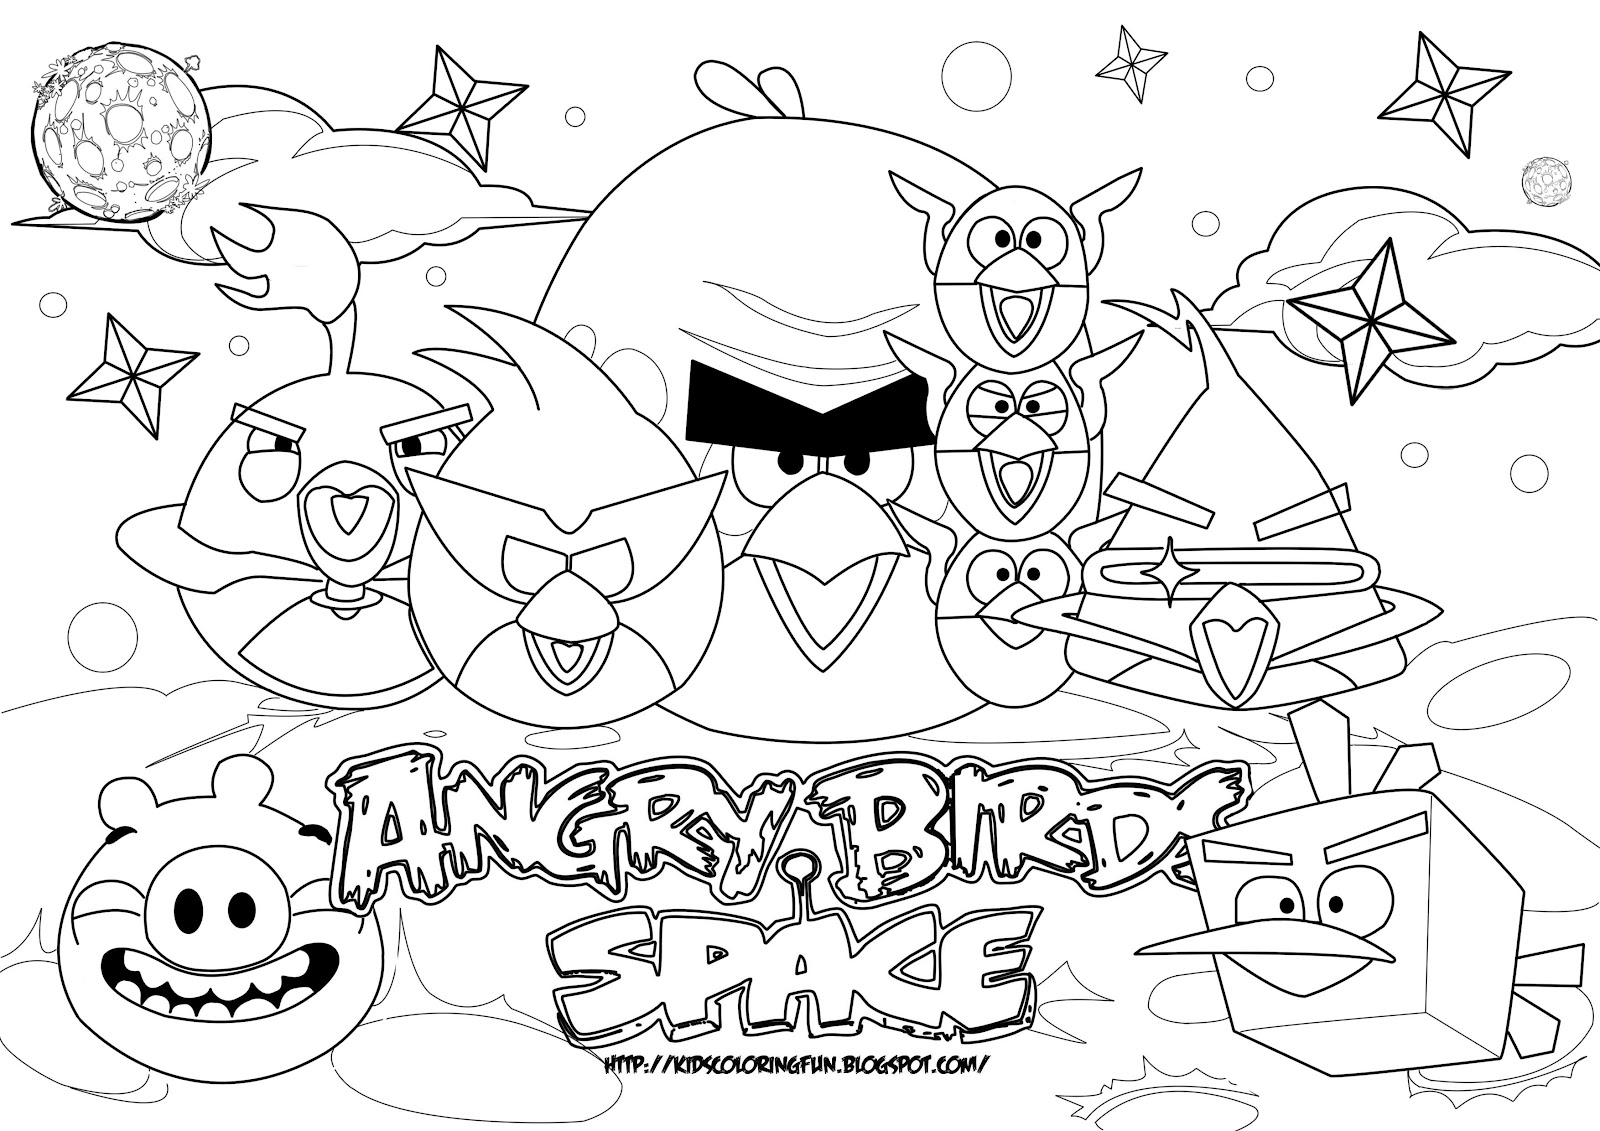 Gratis Kleurplaten Angry Birds.Angry Birds Christmas Coloring Pages At Getdrawings Com